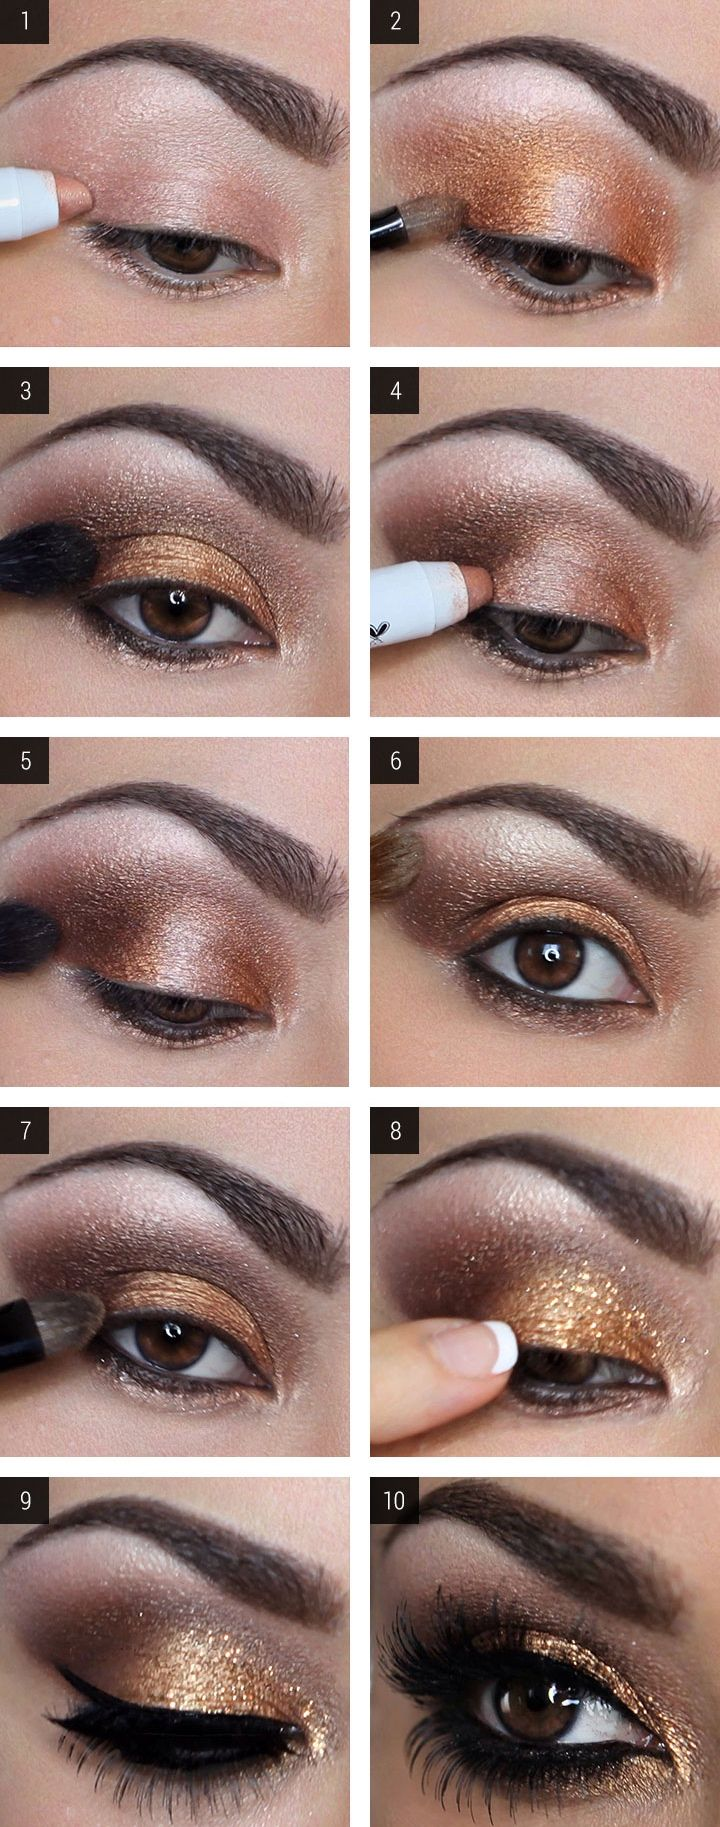 Beauty Update: Step-By-Step To Perfect Party Eyes - The Style Insider